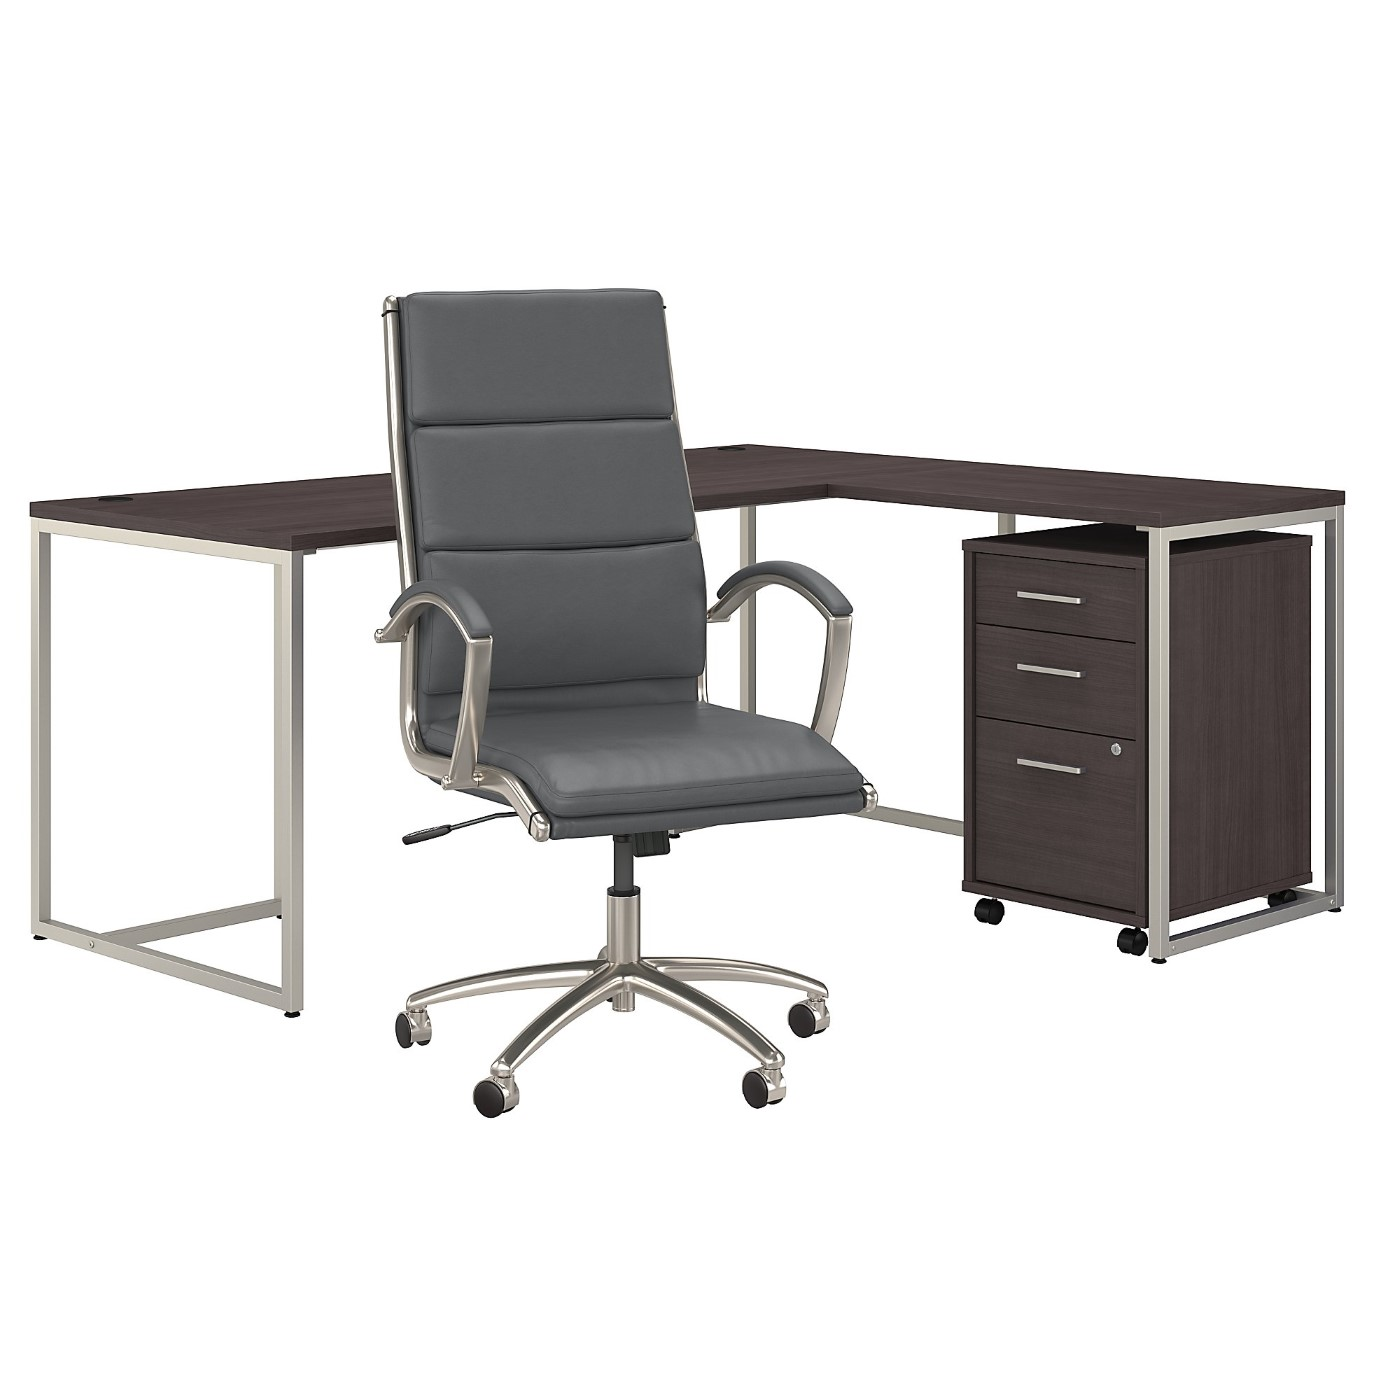 OFFICE BY KATHY IRELAND® METHOD 72W L SHAPED DESK WITH CHAIR AND MOBILE FILE CABINET. FREE SHIPPING SALE DEDUCT 10% MORE ENTER '10percent' IN COUPON CODE BOX WHILE CHECKING OUT.